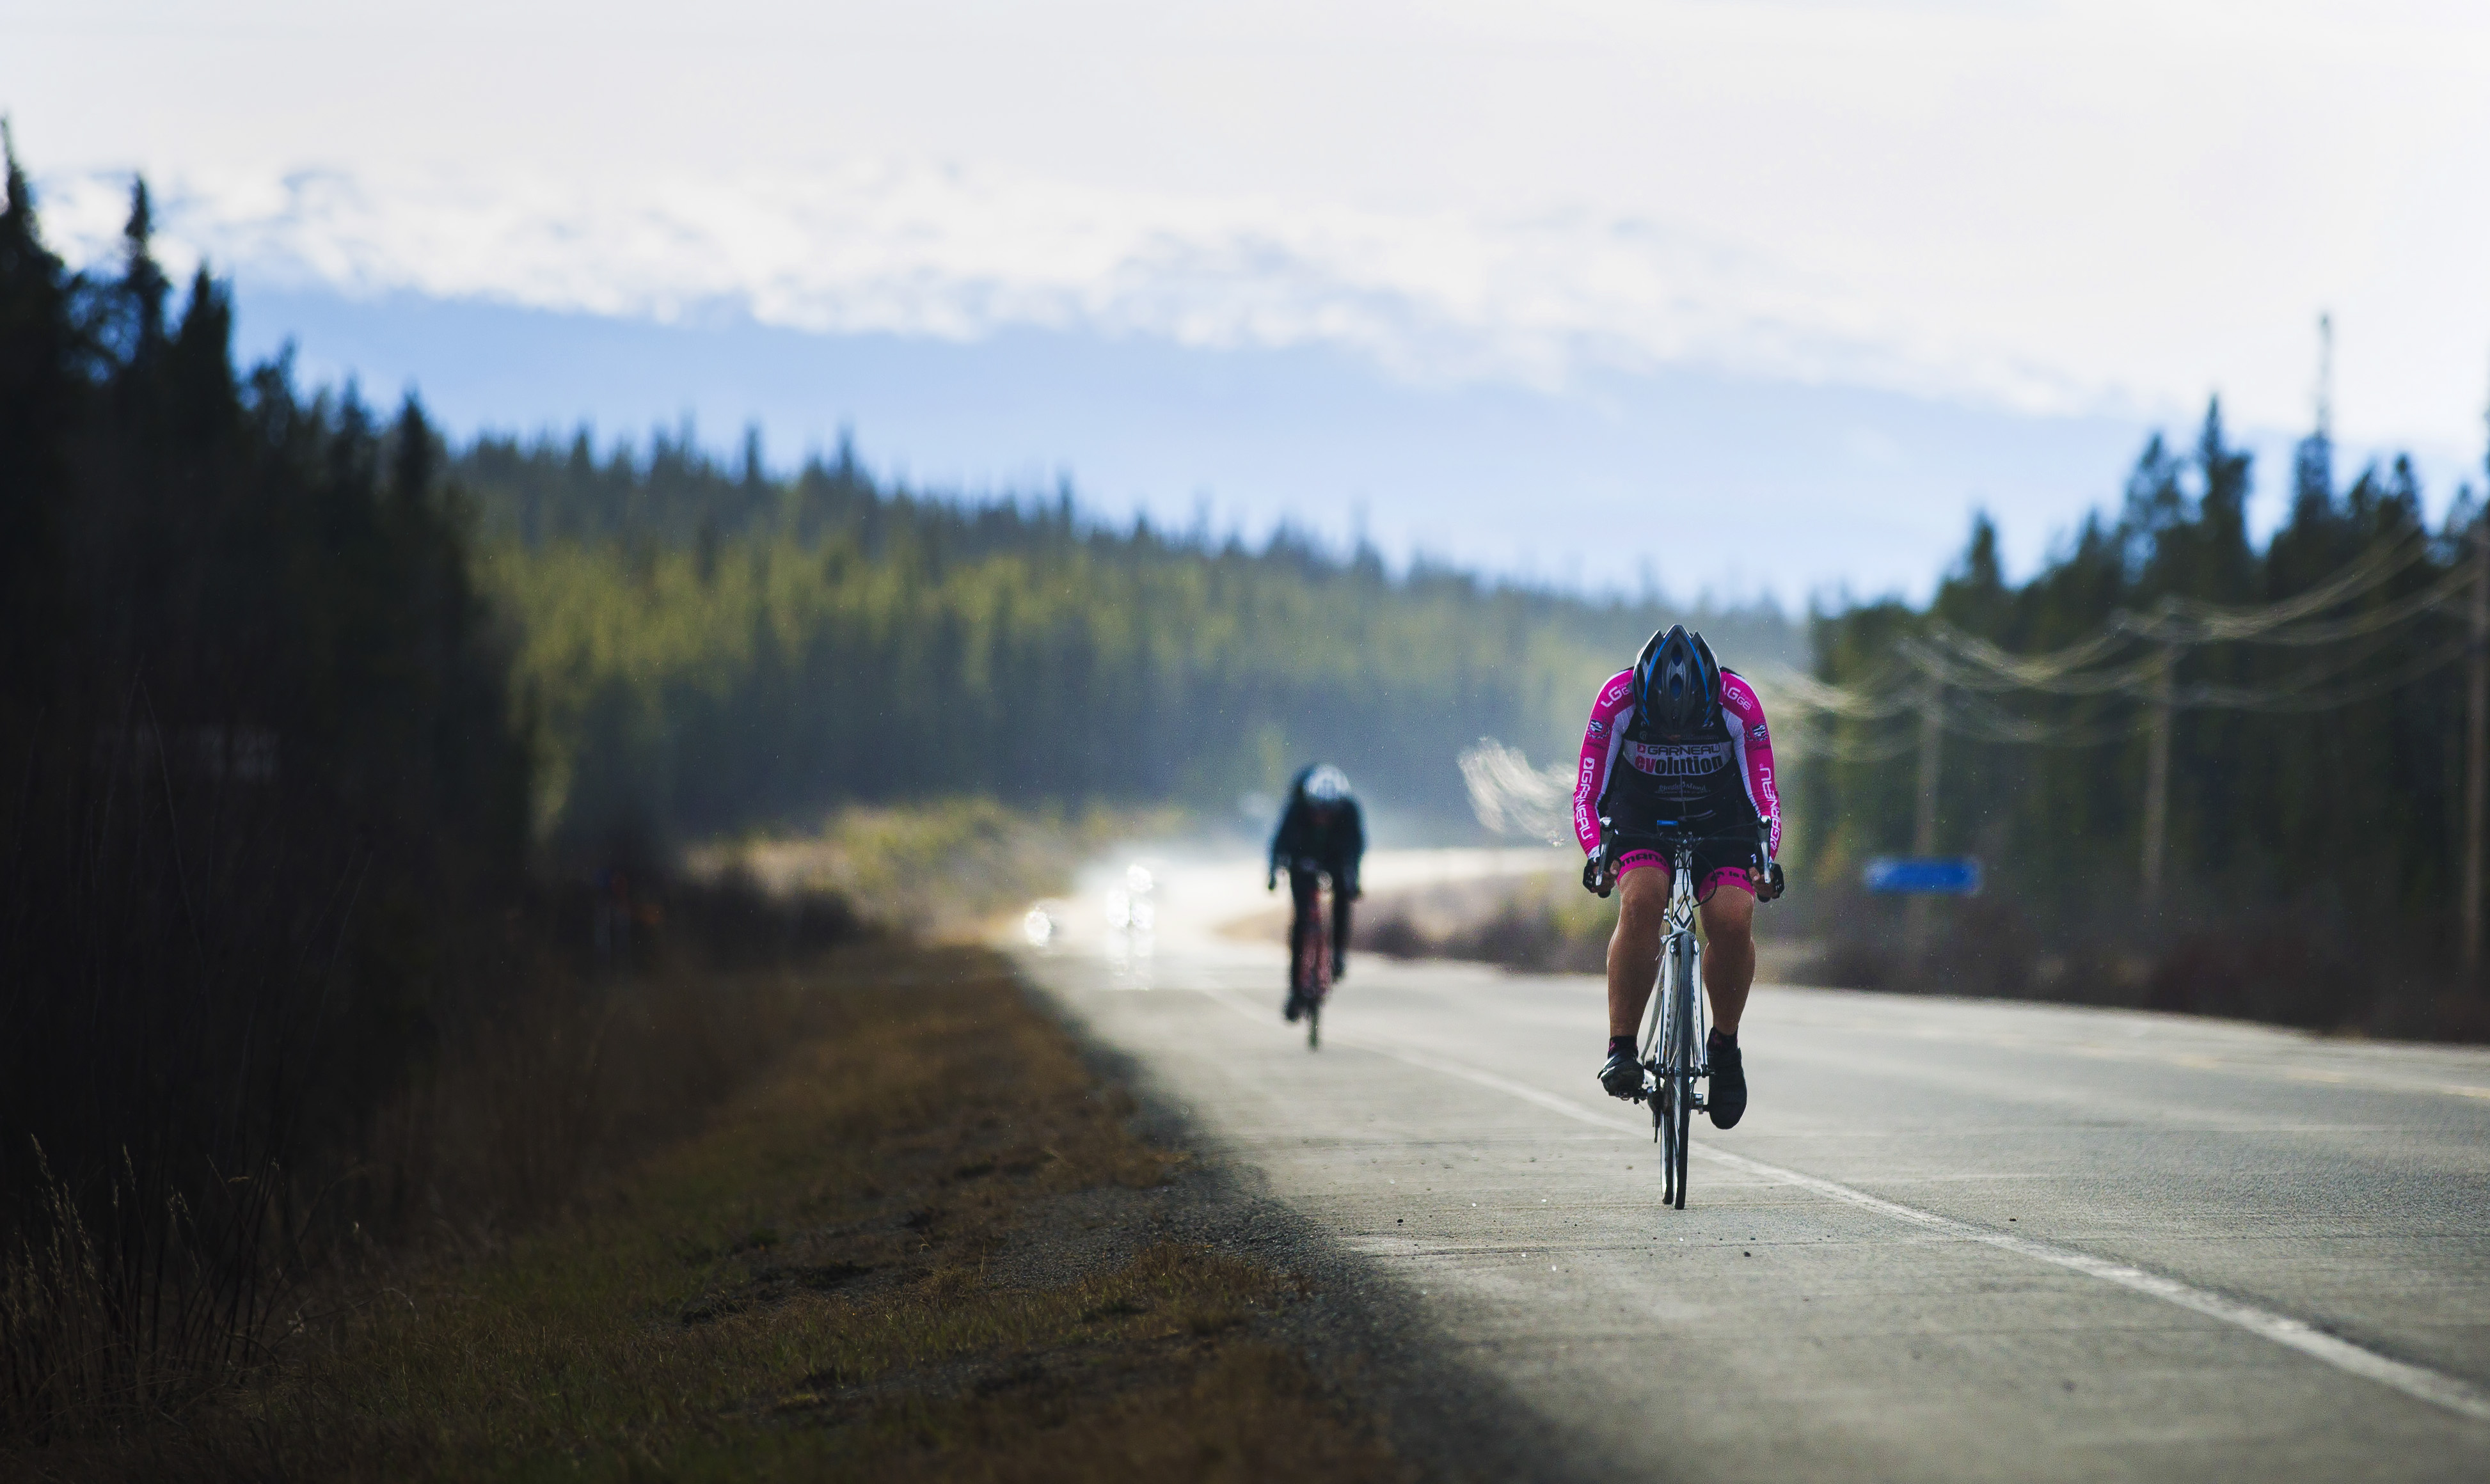 Trena Irving leads a rider during the first U Kon Echelon time trial race on the Alaska Highway near the Carcross Cutoff on Weds., May 10, 2017.